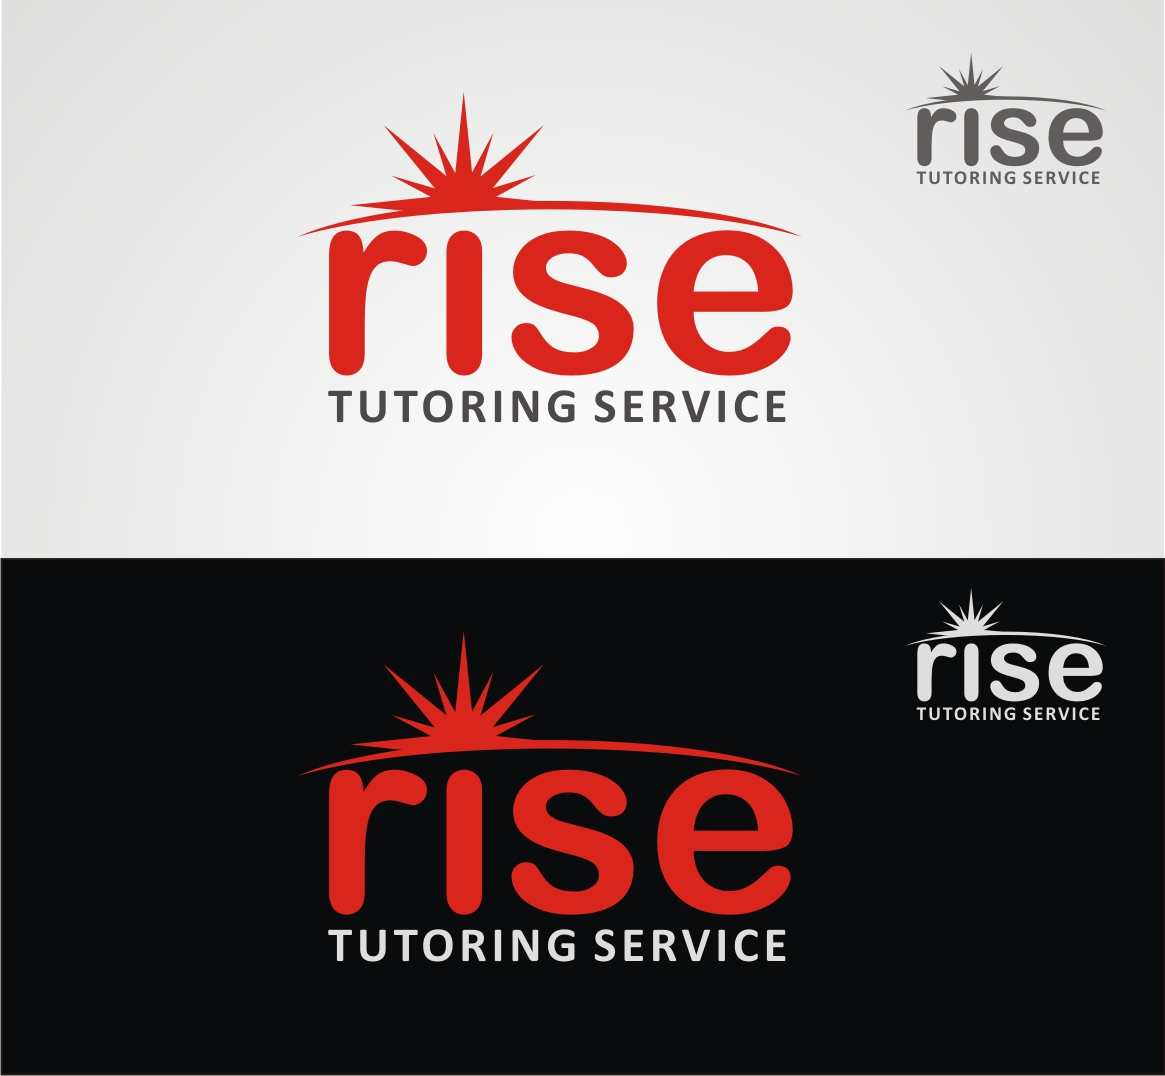 Logo Design by Reivan Ferdinan - Entry No. 93 in the Logo Design Contest Imaginative Logo Design for Rise Tutoring Service.